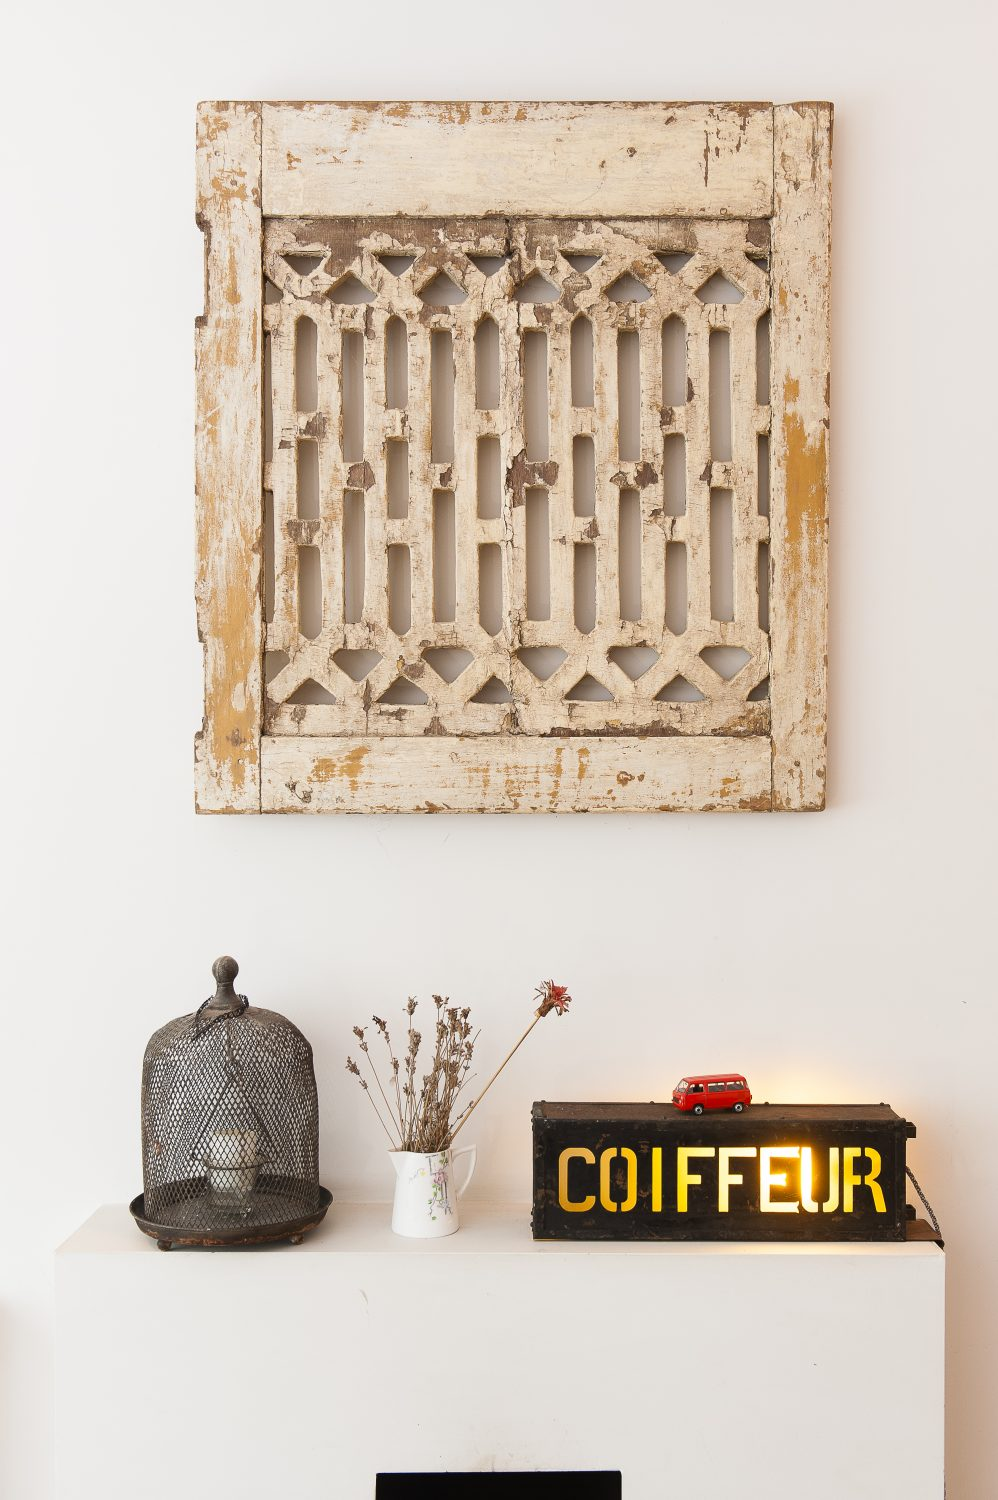 An old French chateau shutter on the living room wall is displayed like a piece of art above an illuminated coiffeur unit from a French hairdresser's, picked up in Lille at the Braderie France, a massive flea market